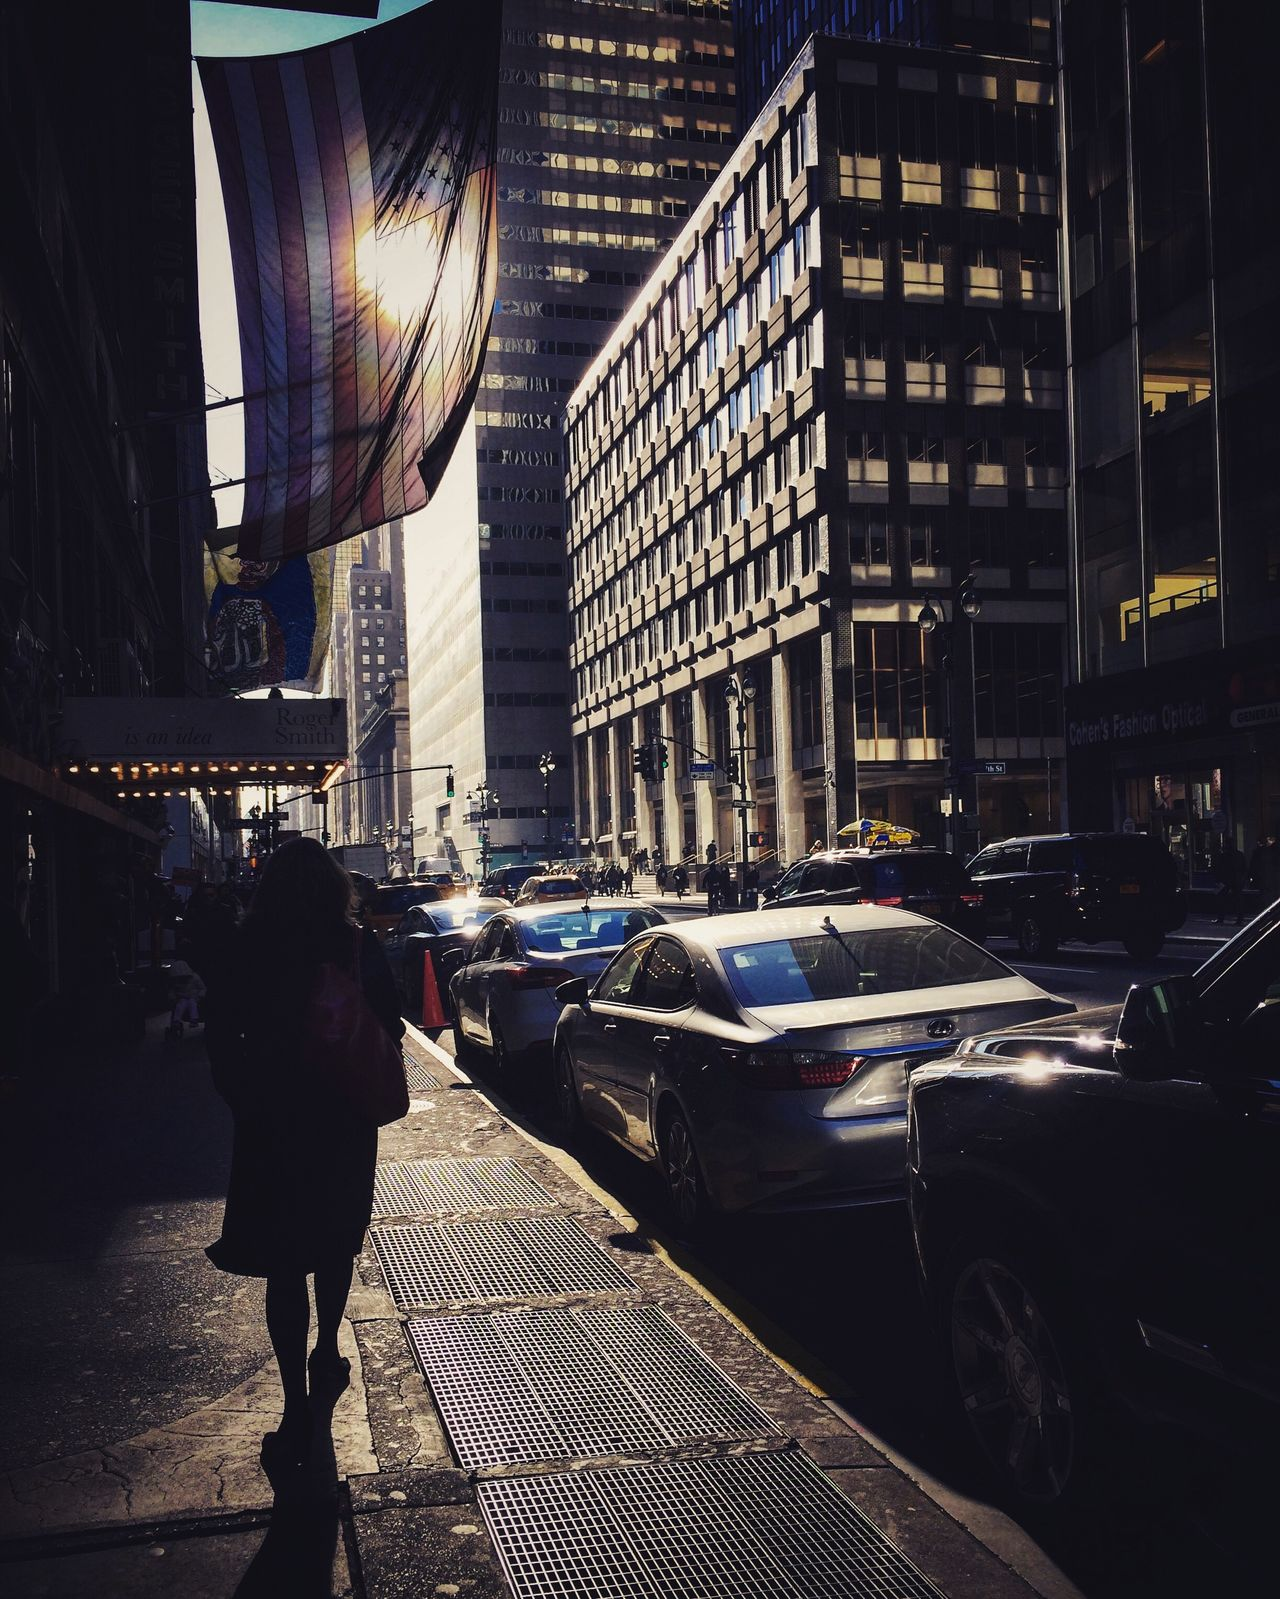 City Street Built Structure Building Exterior Car City Street City Life Real People Architecture People One Person Outdoors Adults Only Adult Day Winter Sunlight Walking Around Walking Pavement Sidewalk City